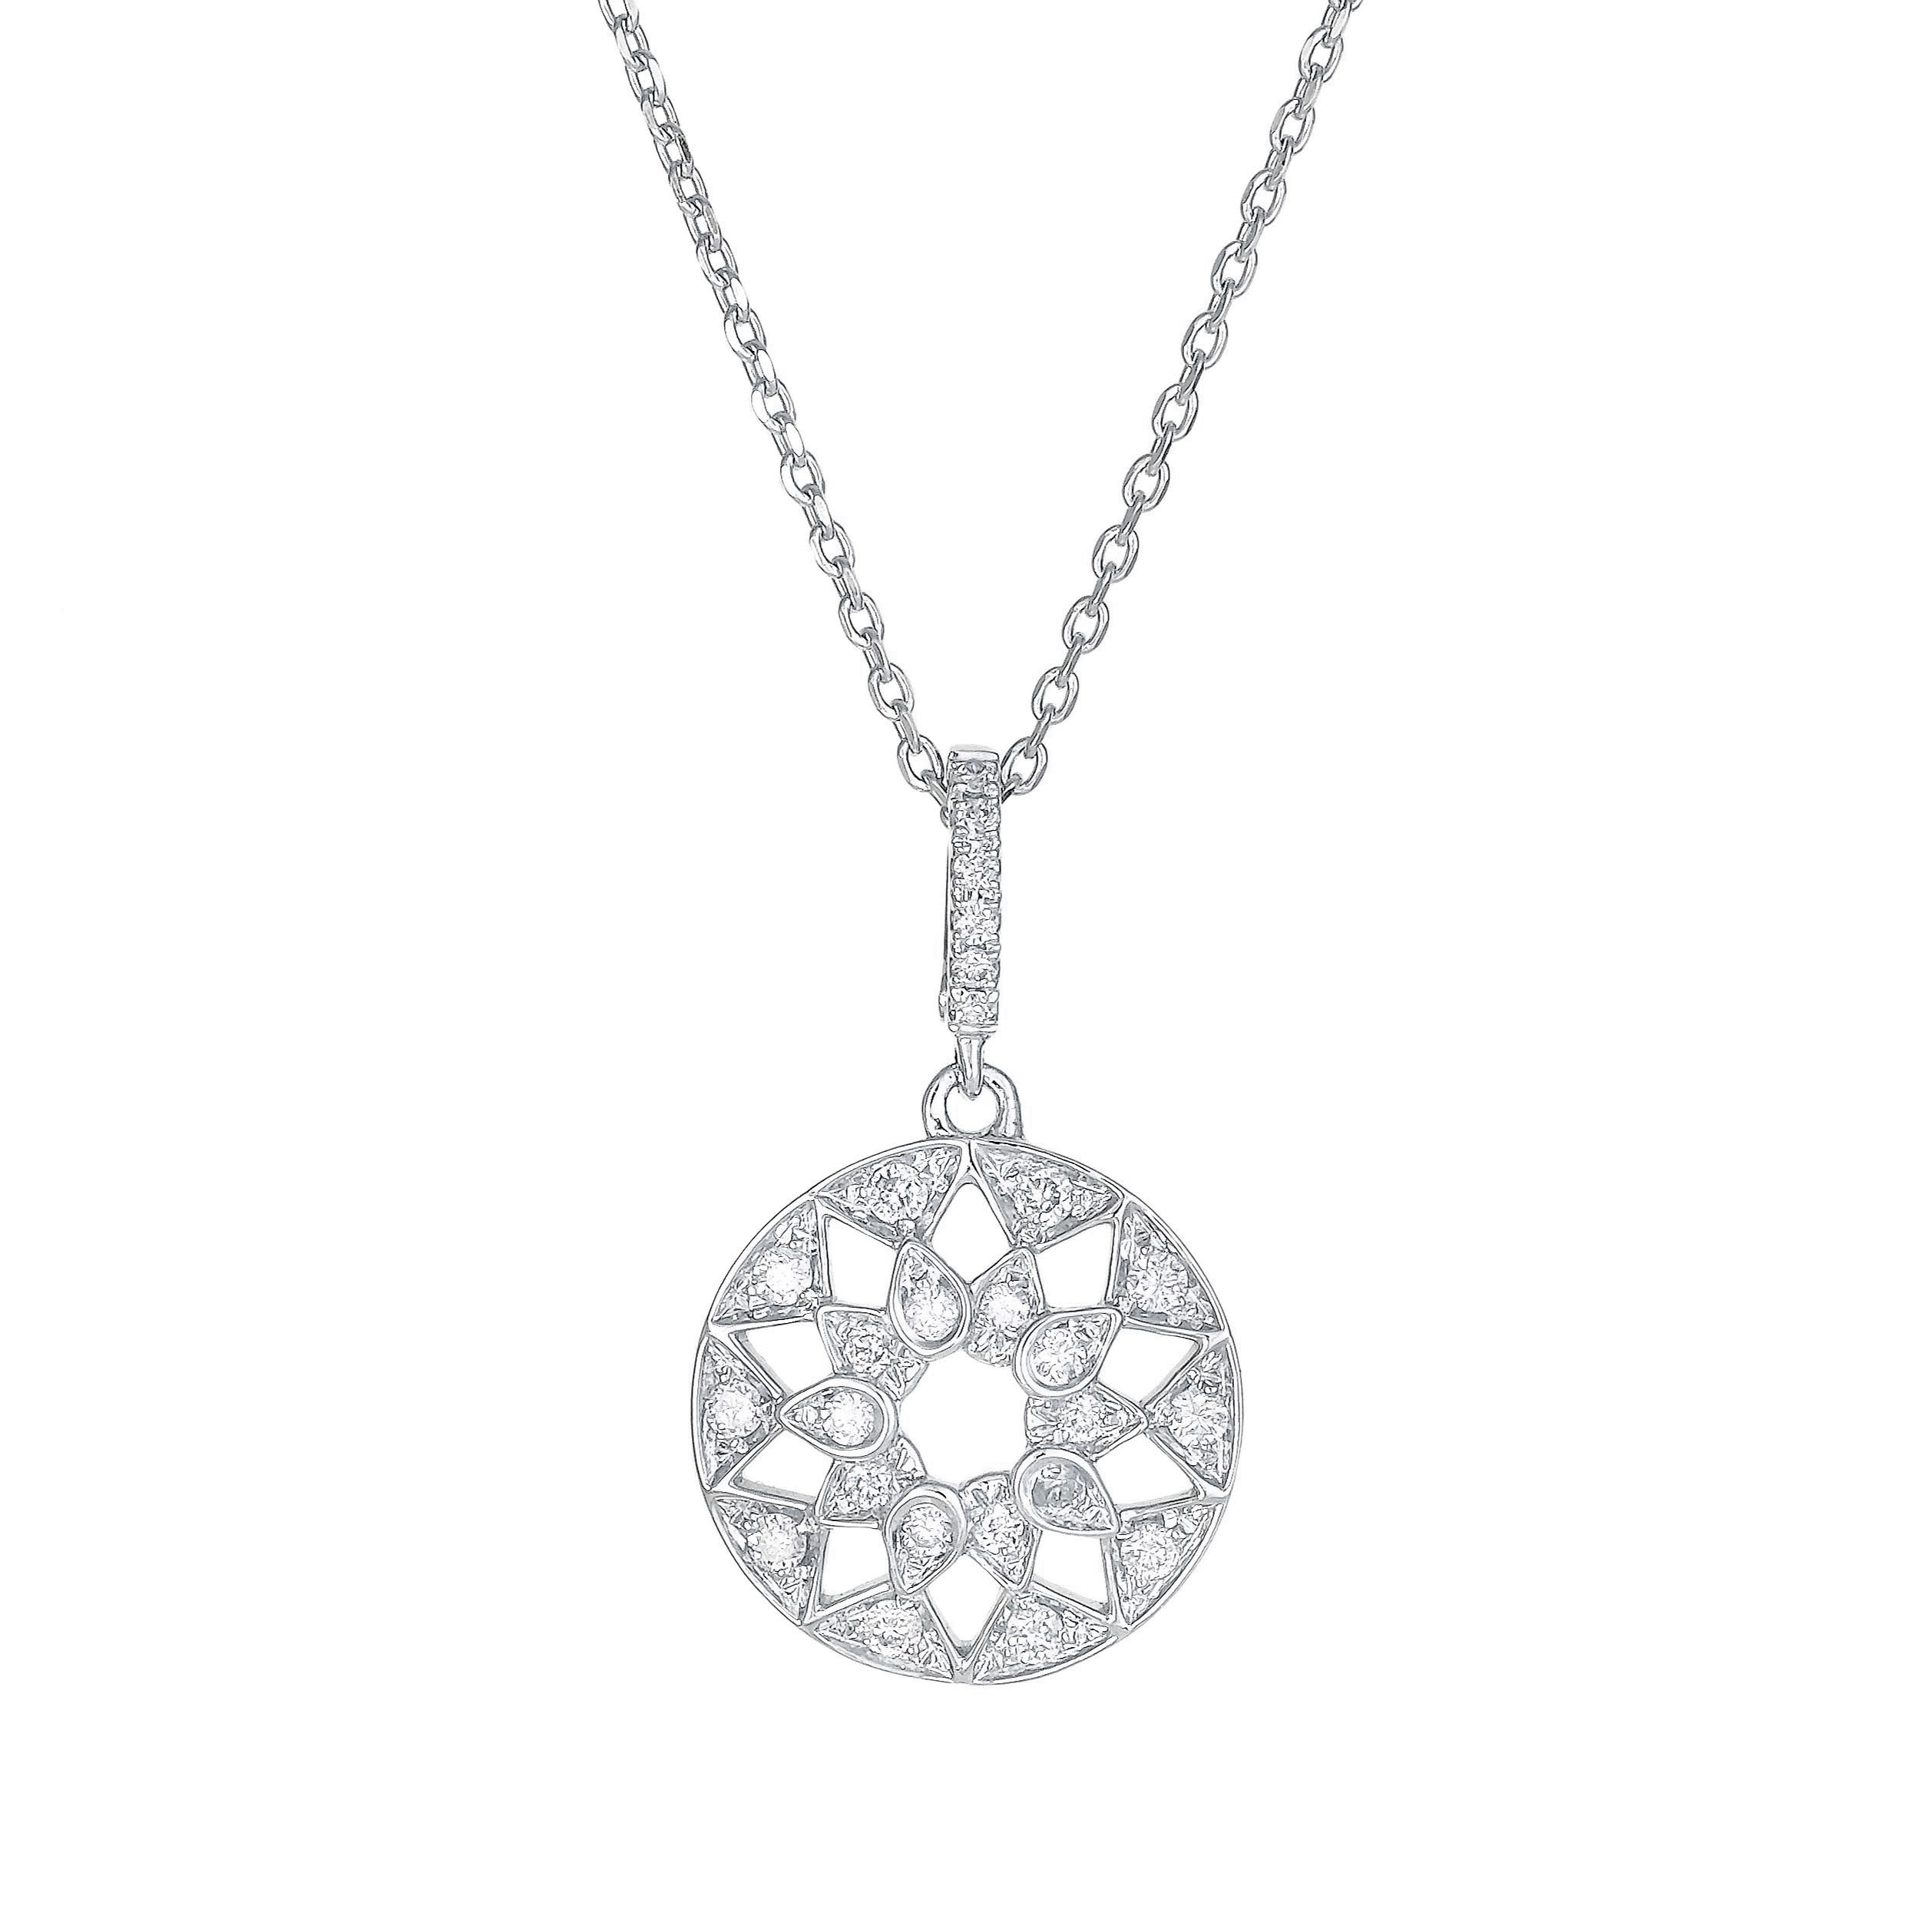 eliise maar gold products cheap luna necklace diamond